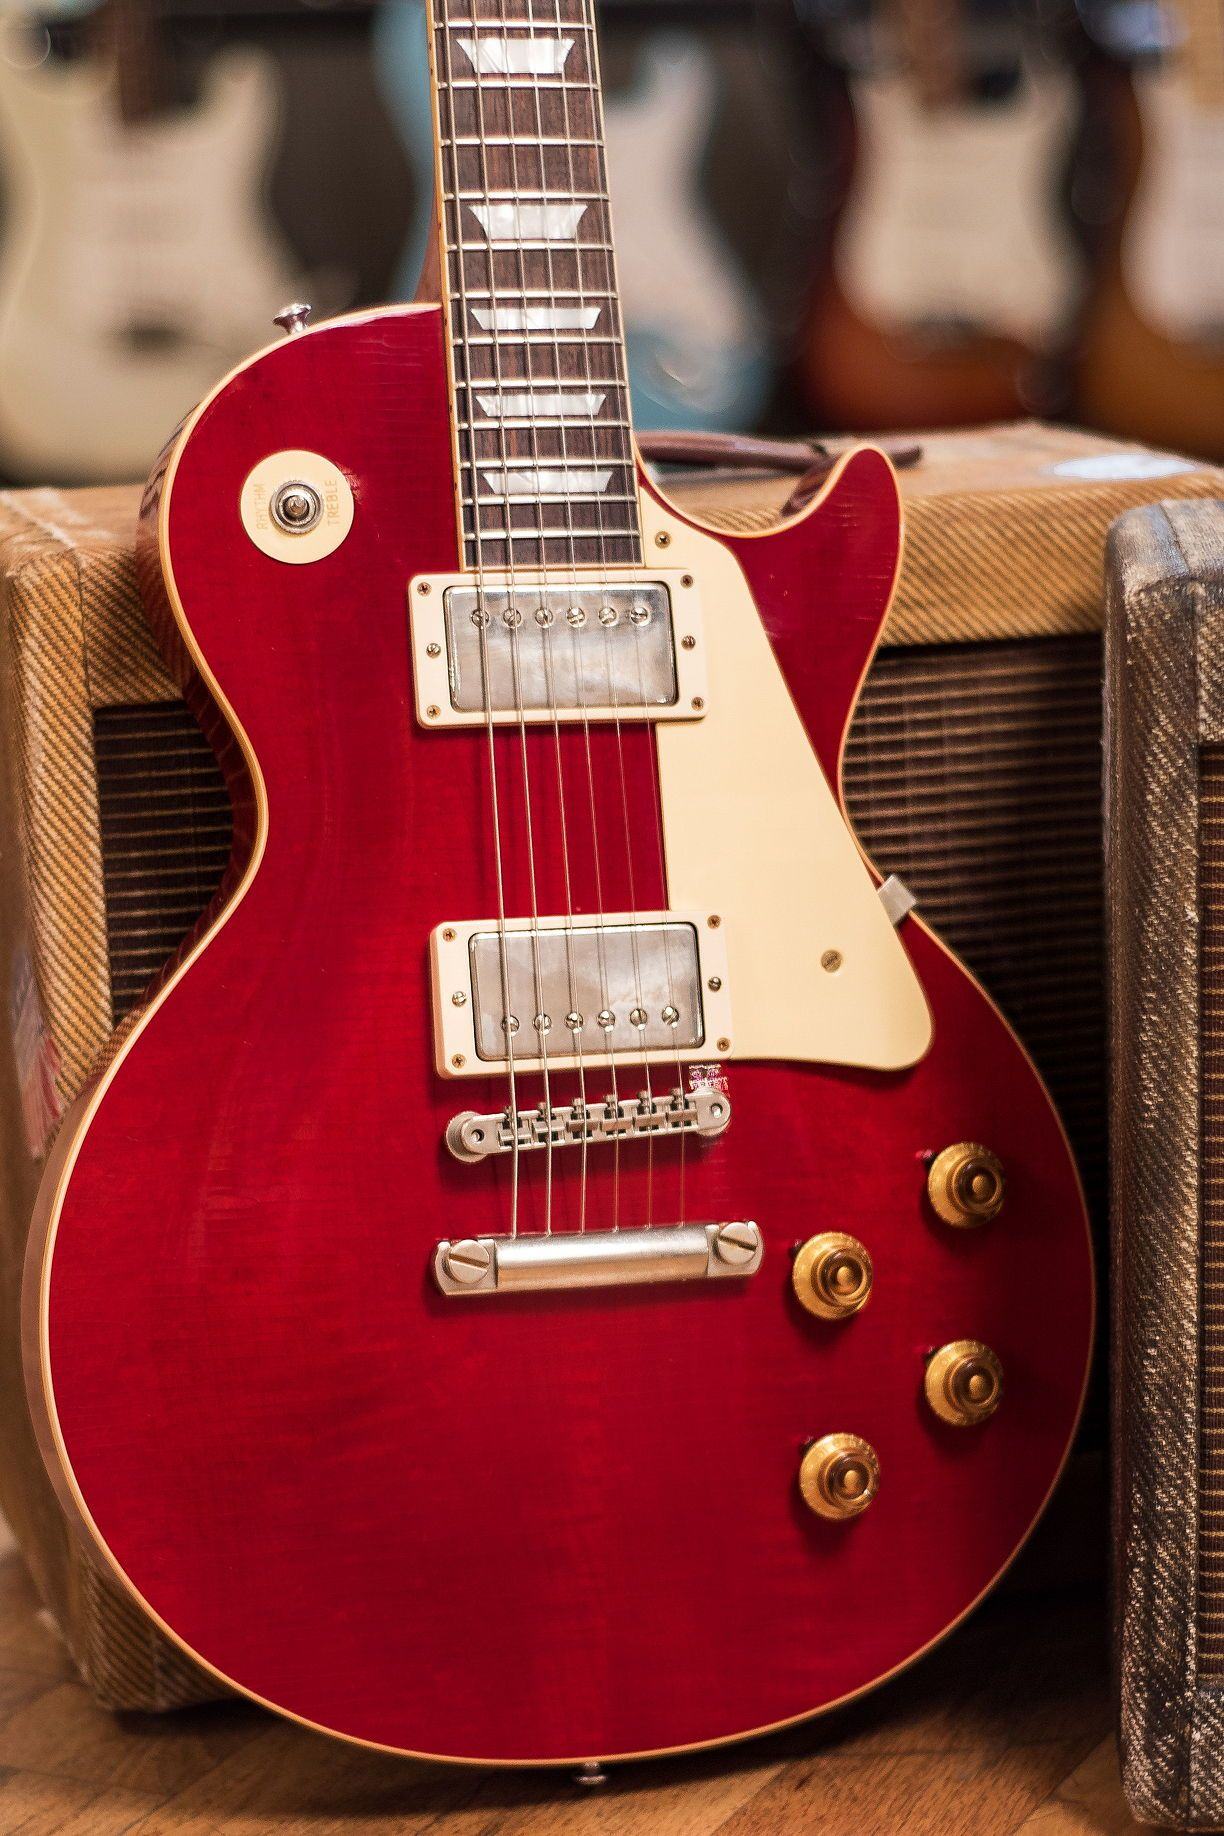 Gibson Custom 1958 Les Paul Standard Plain Top Viking Red VOS (Serial #CME80105) #vintageguitars